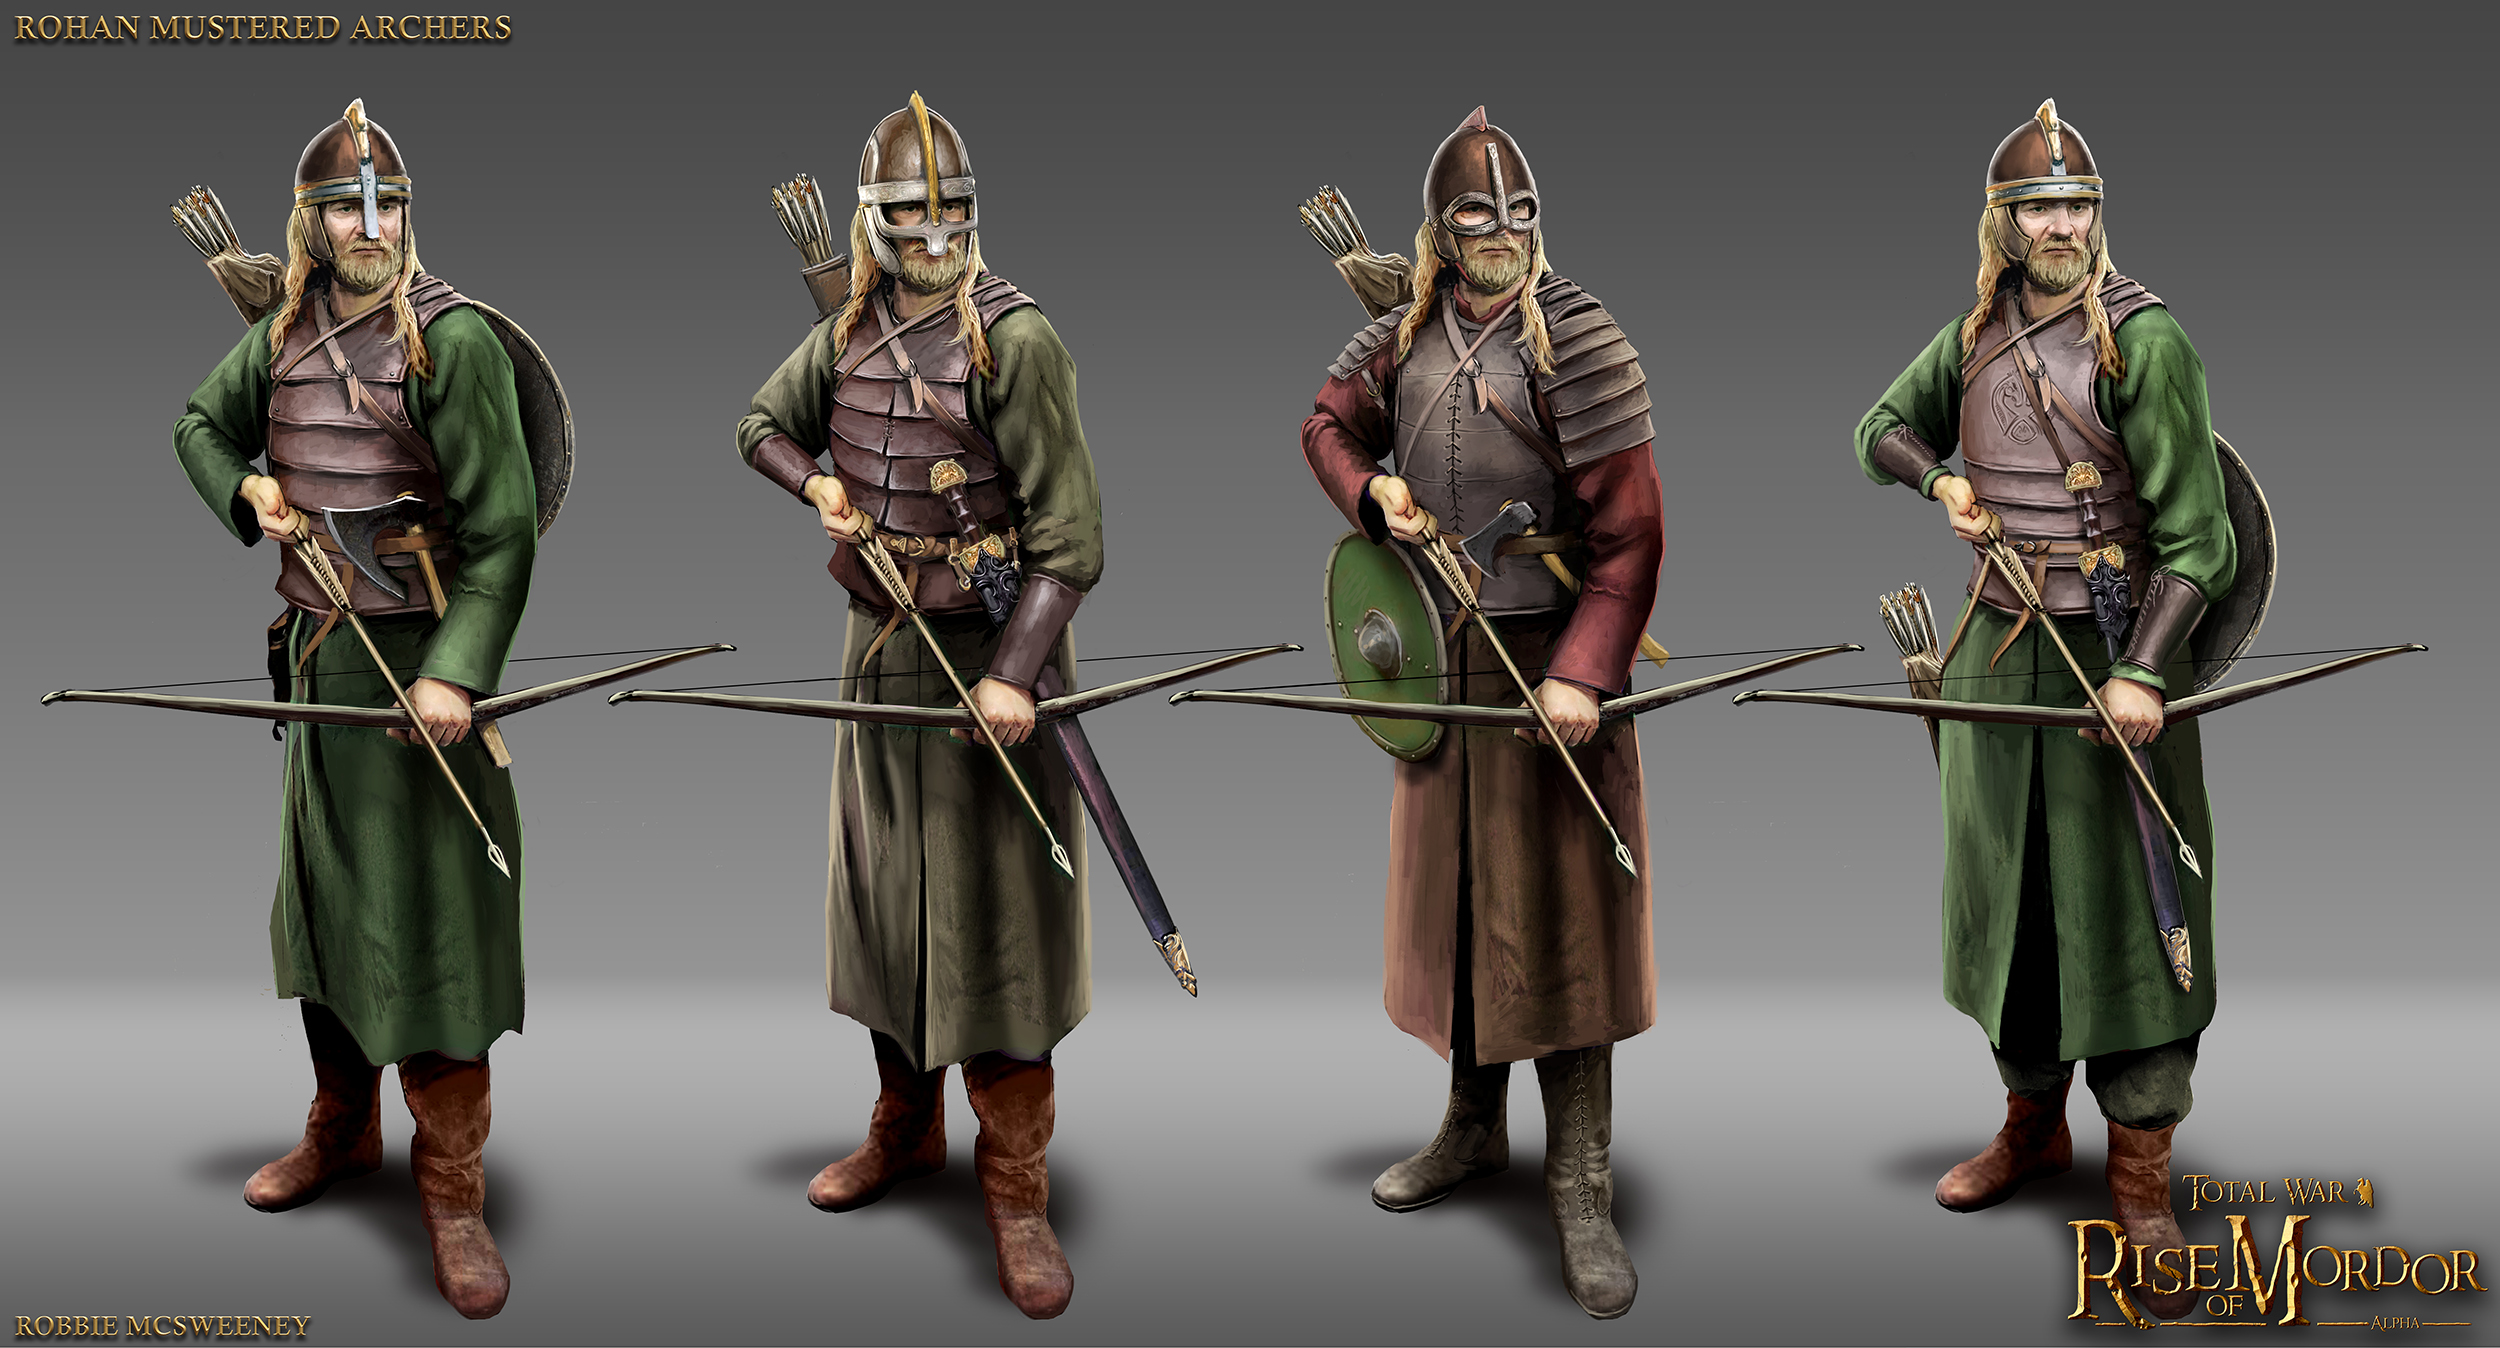 Rohan Mustered Archers